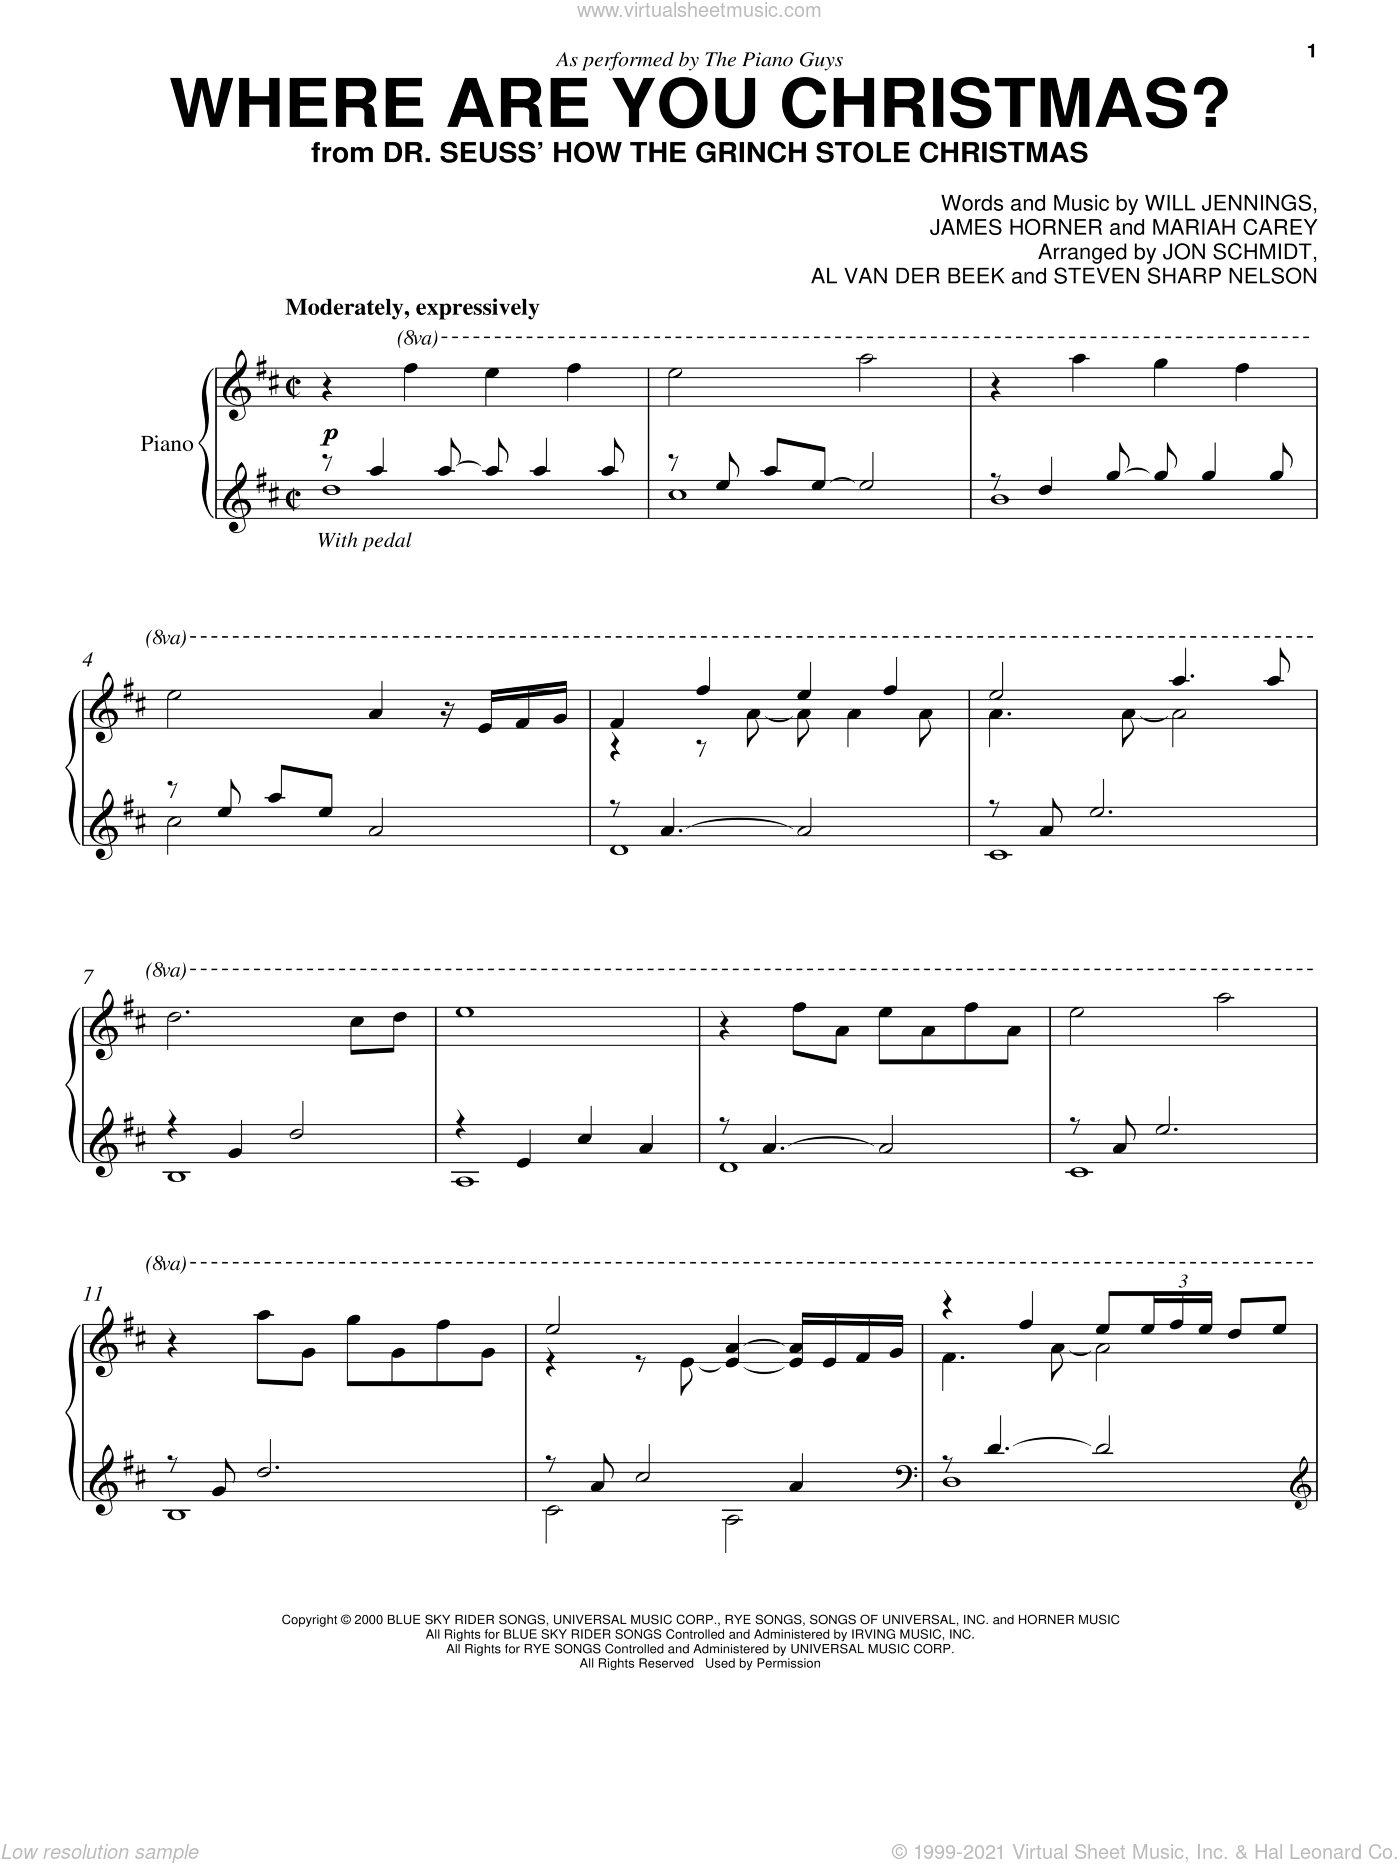 Where Are You Christmas? (from How The Grinch Stole Christmas) sheet music for cello and piano by The Piano Guys, Faith Hill, James Horner, Mariah Carey and Will Jennings, intermediate skill level